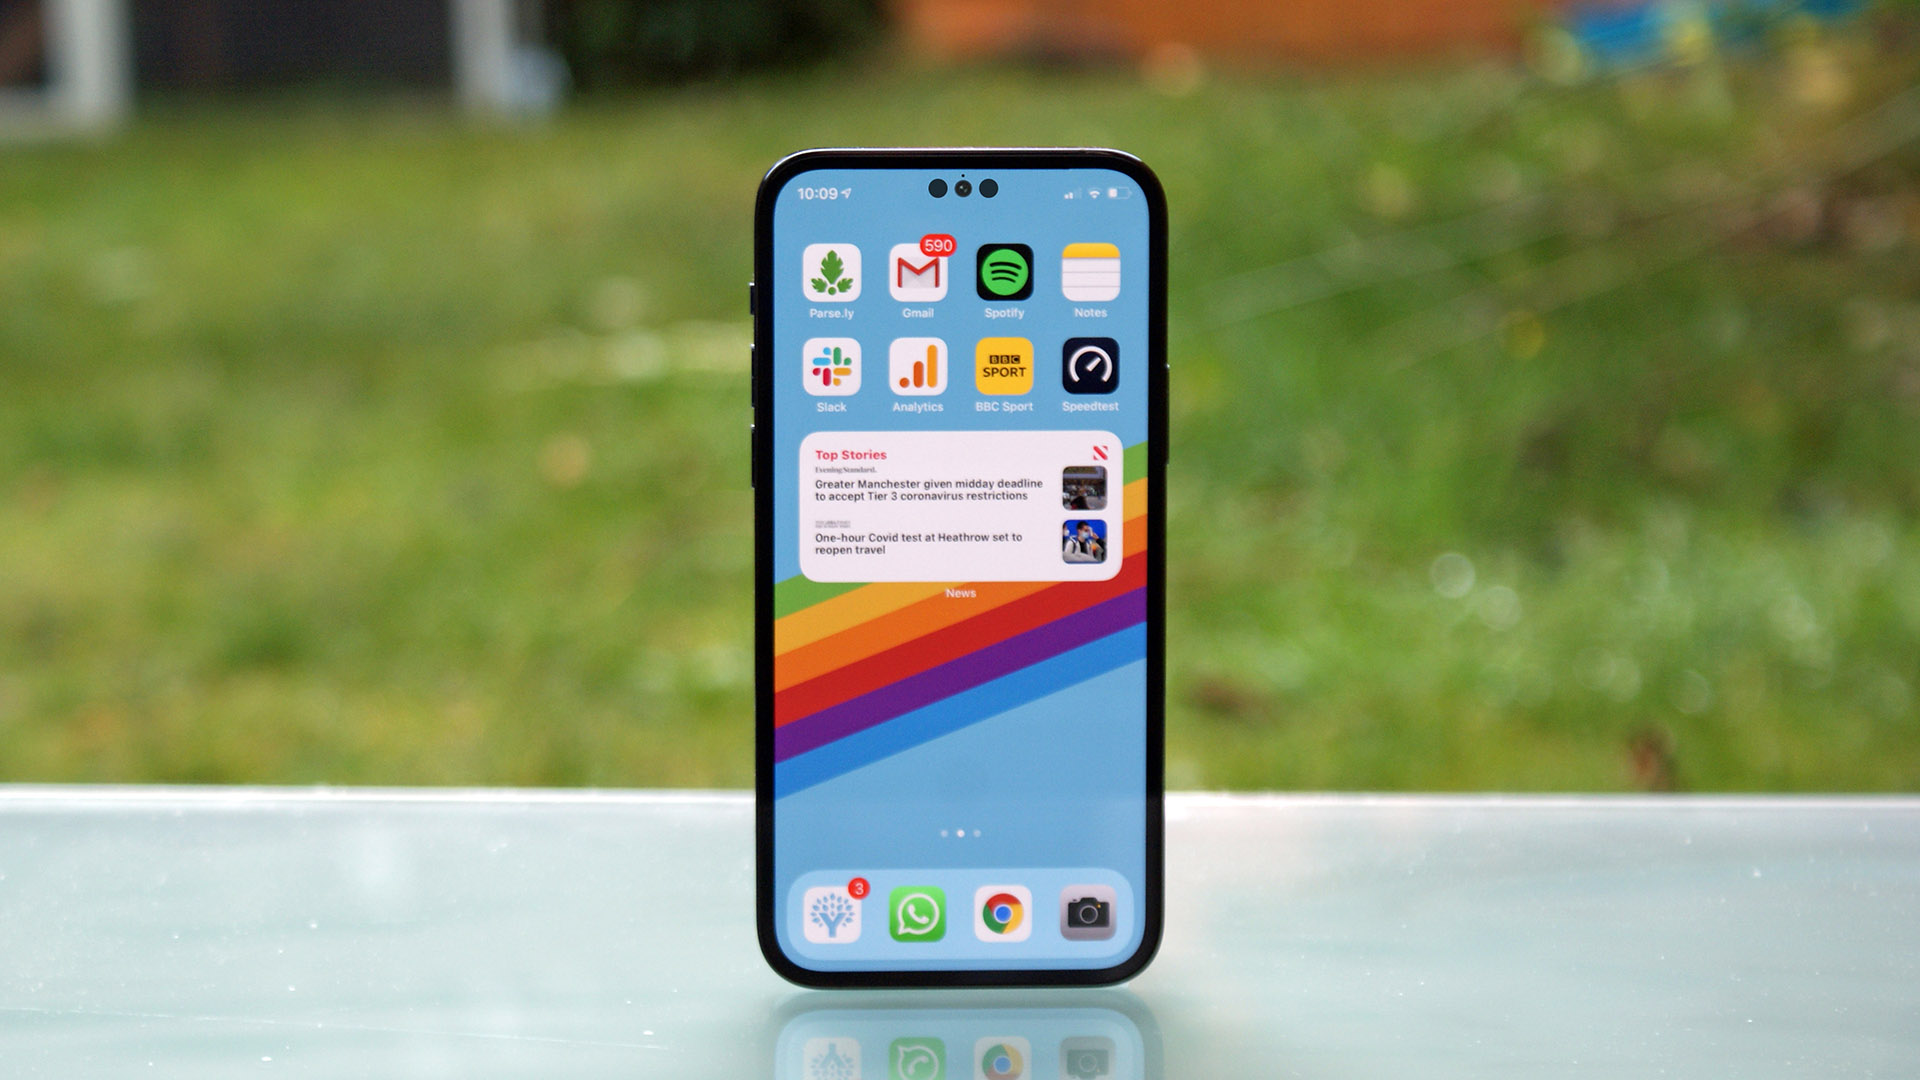 notch-less-iPhone-concept-1